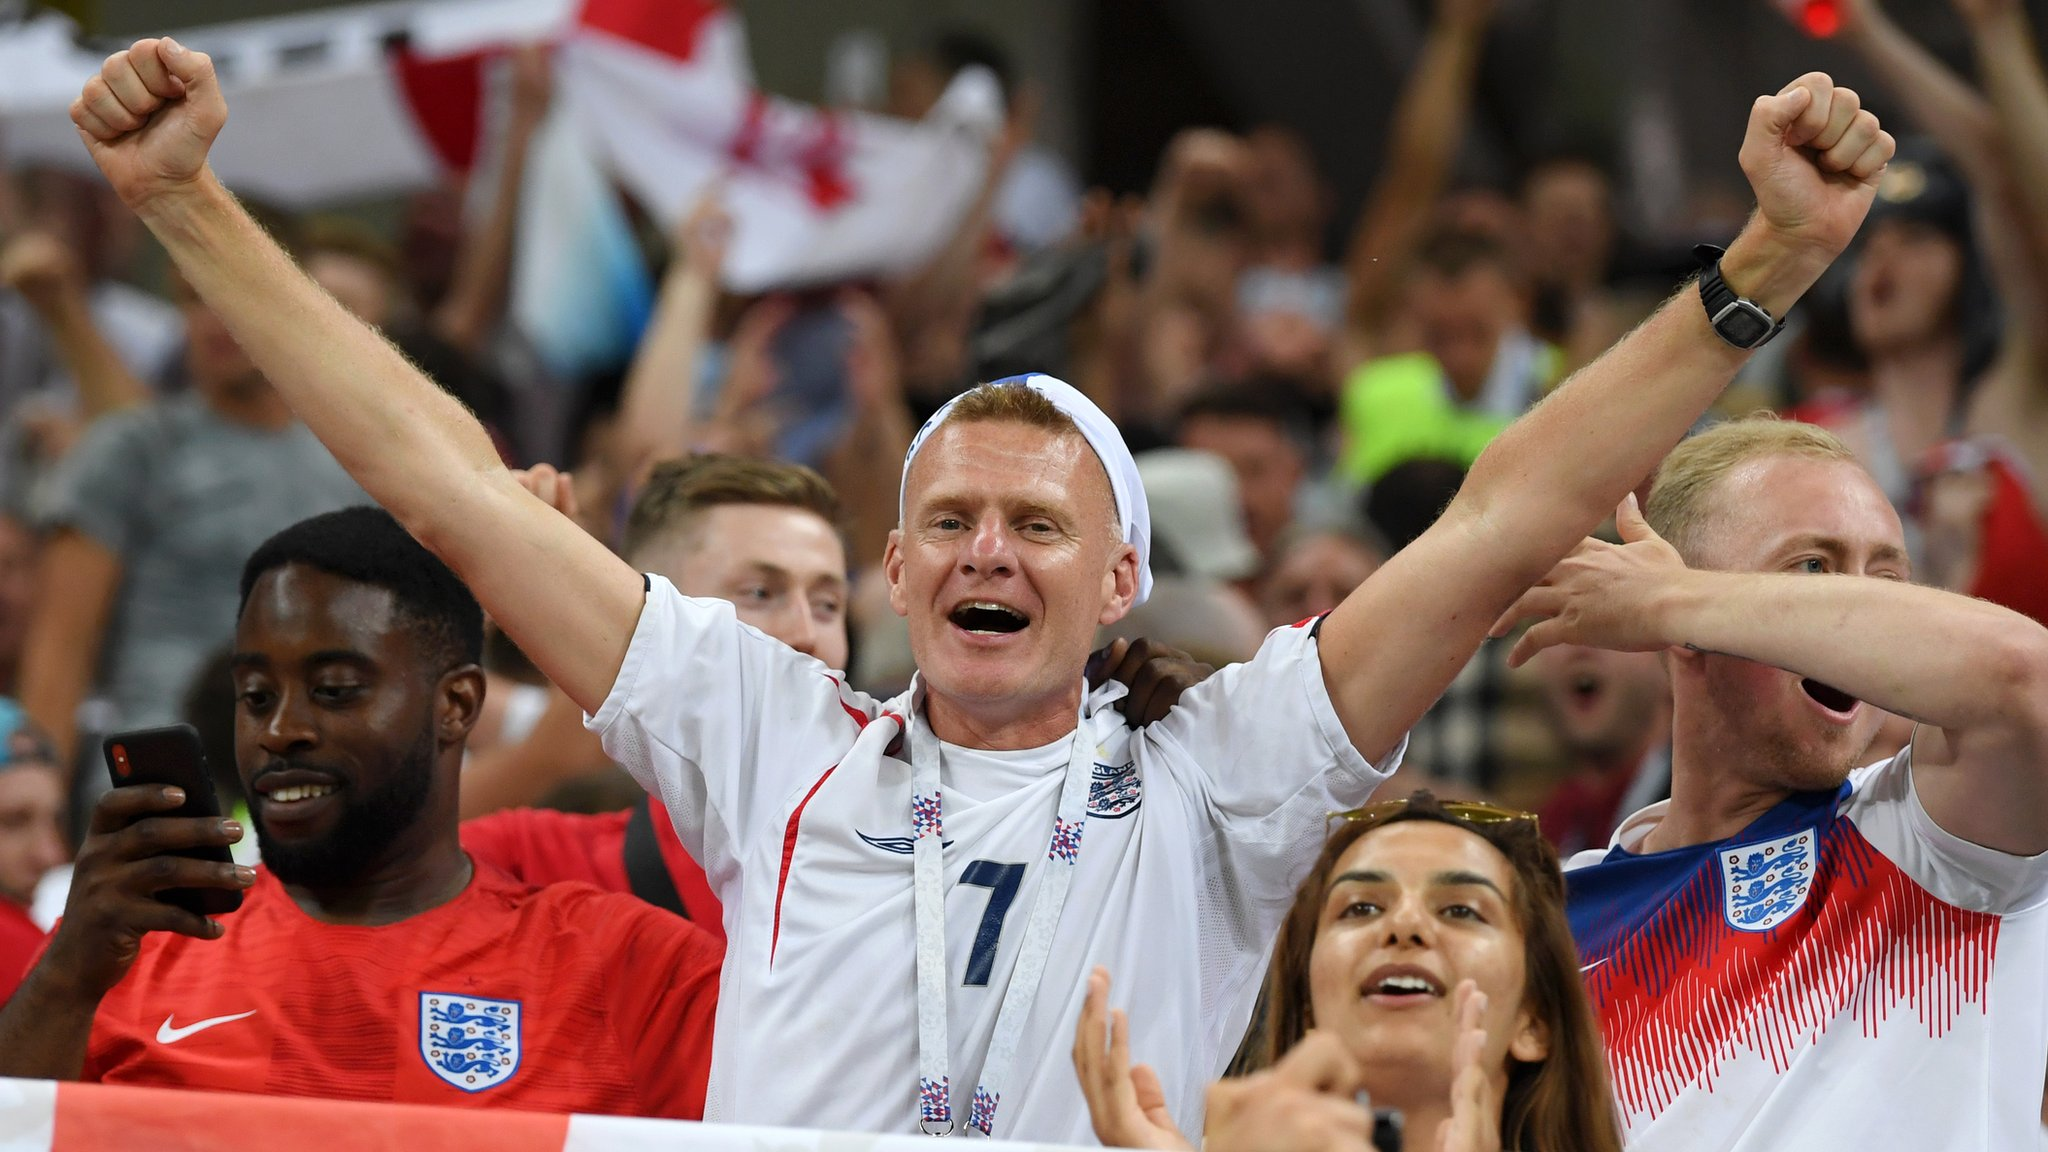 18.3m watched England beat Tunisia; record 3m streamed match